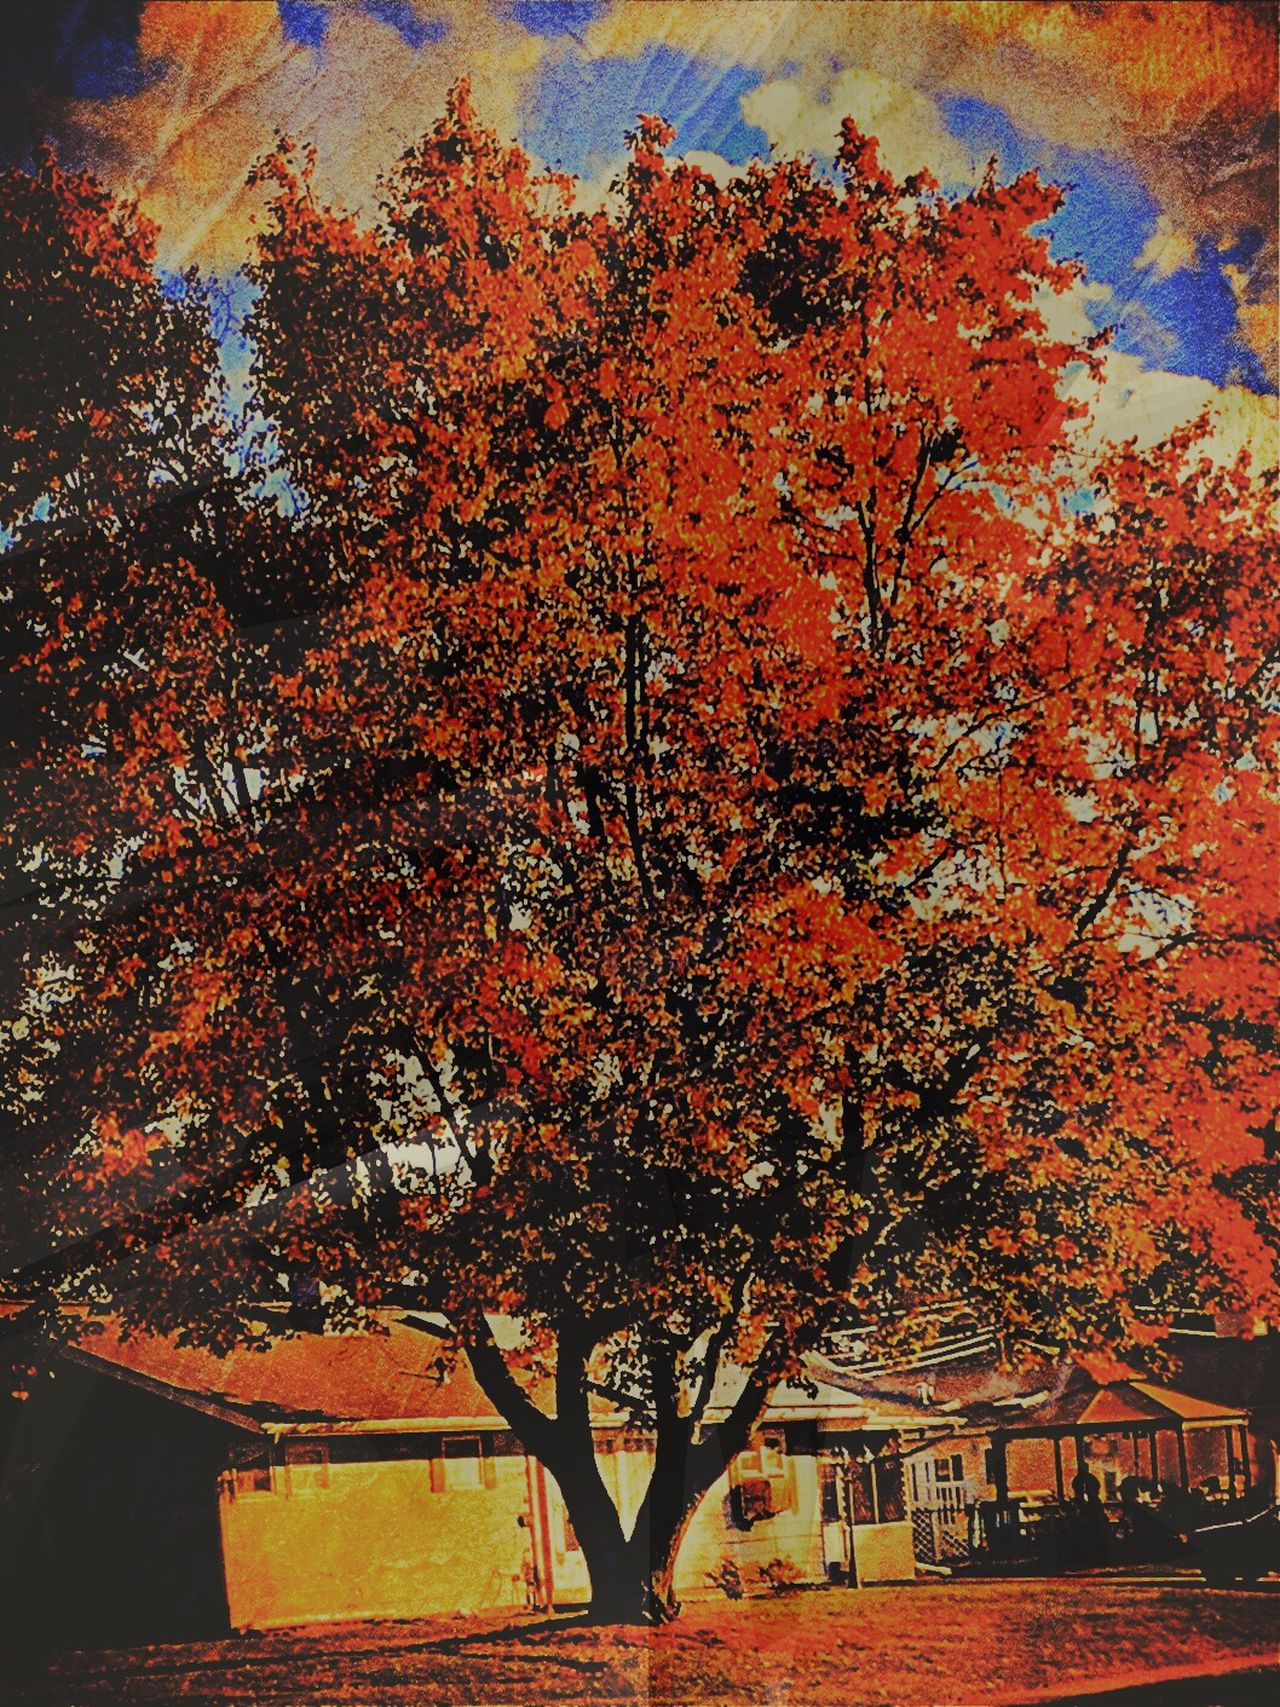 Beautiful Fall tree Tree Nature Growth Beauty In Nature Day Outdoors Autumn Sky Scenics Tranquility Iphonephotography Fallfoliage Fall Beauty Cloud - Sky Beauty In Nature Colorphotography Camerafilters Multi Colored Taking Pictures